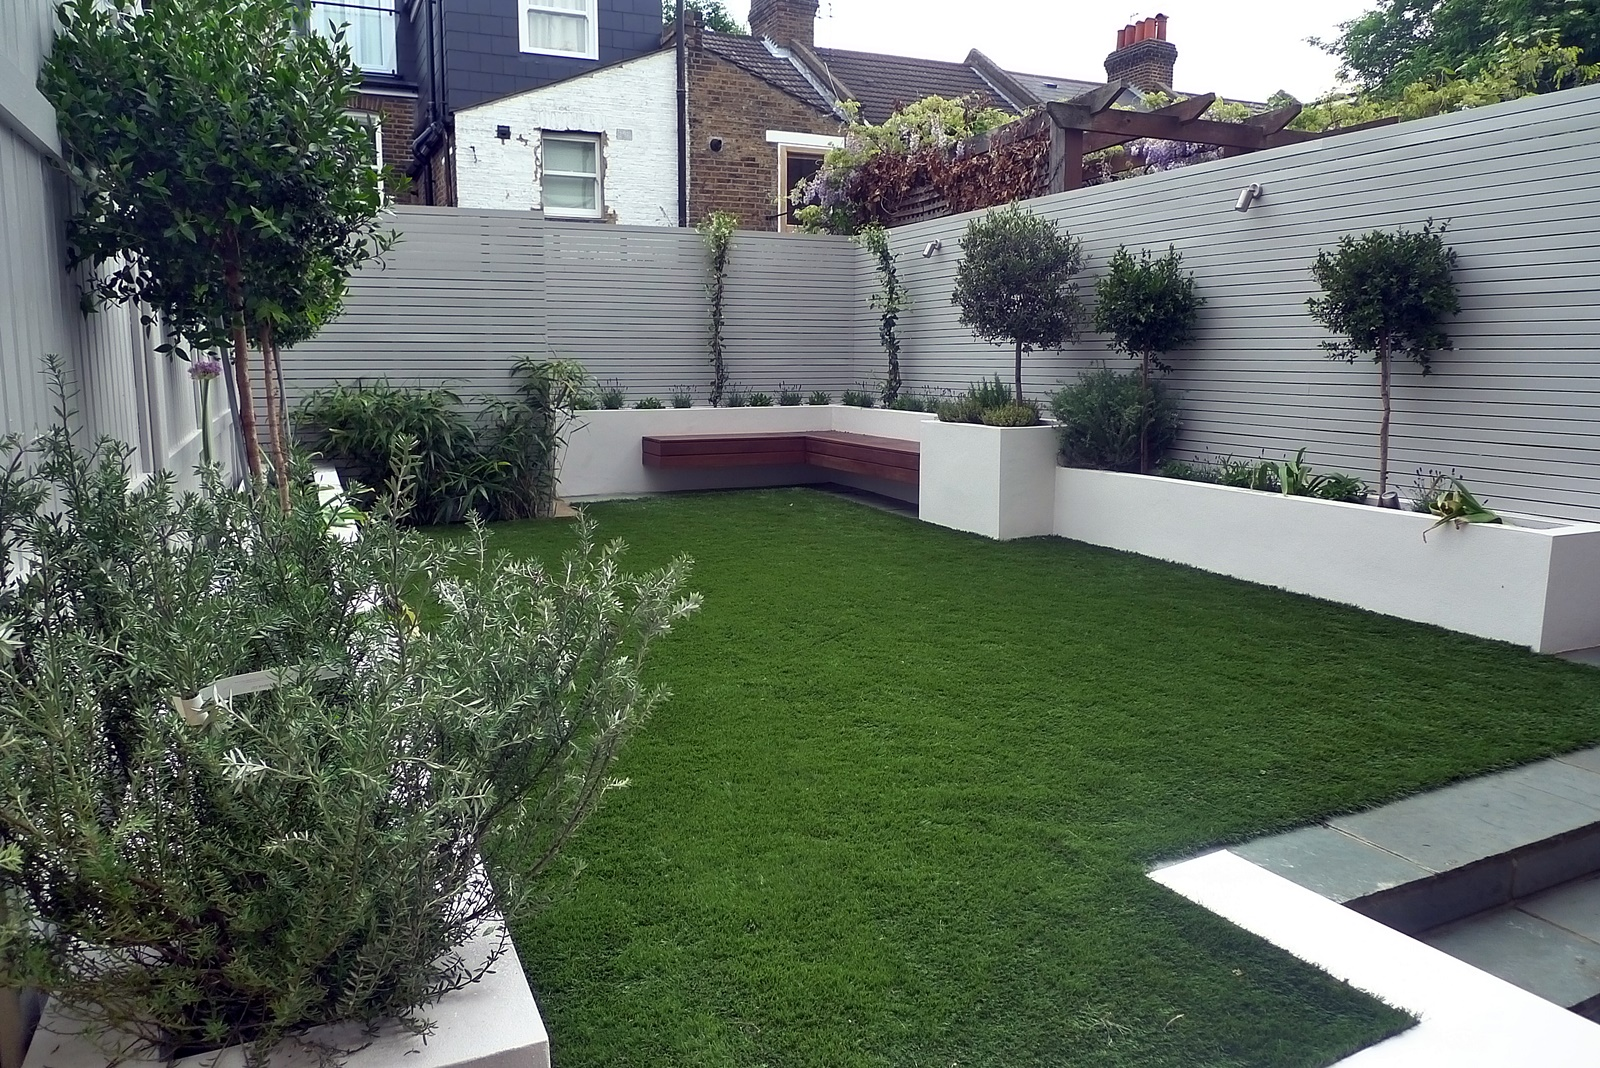 London garden blog london garden blog gardens from for Garden landscape design